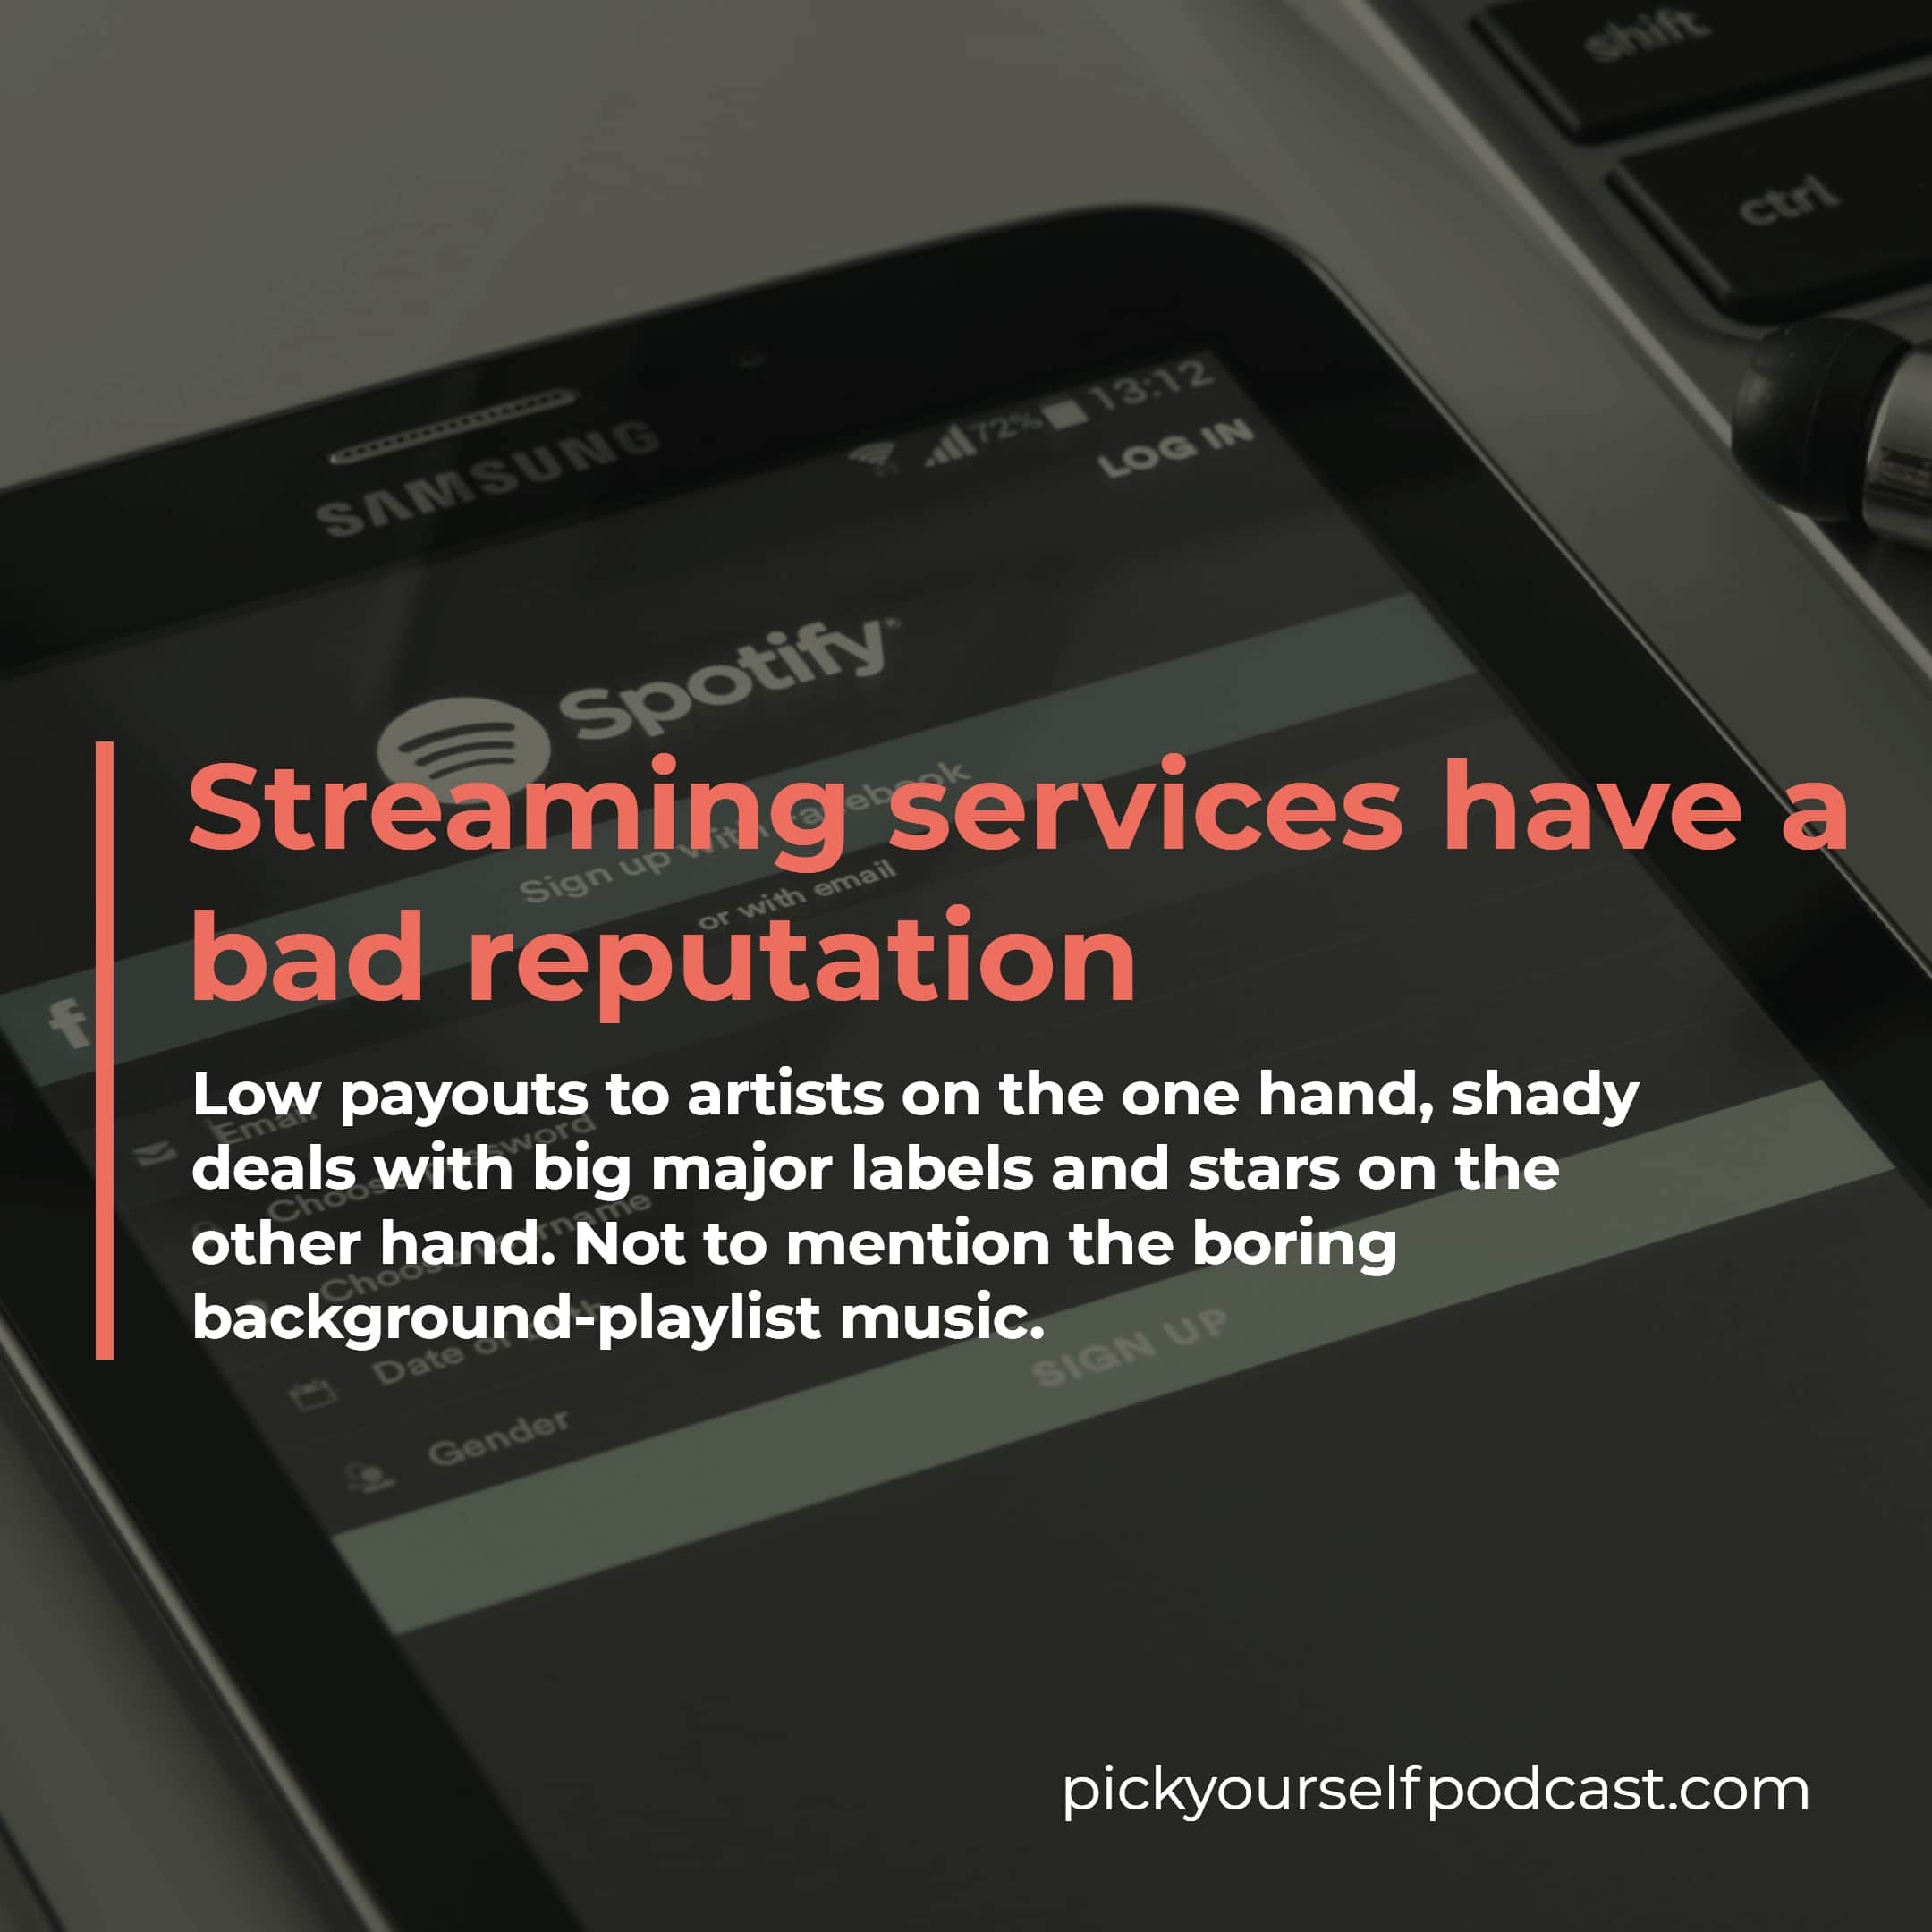 Is Spotify Bad For Artists? Streaming services have a bad reputation among upcoming artists.